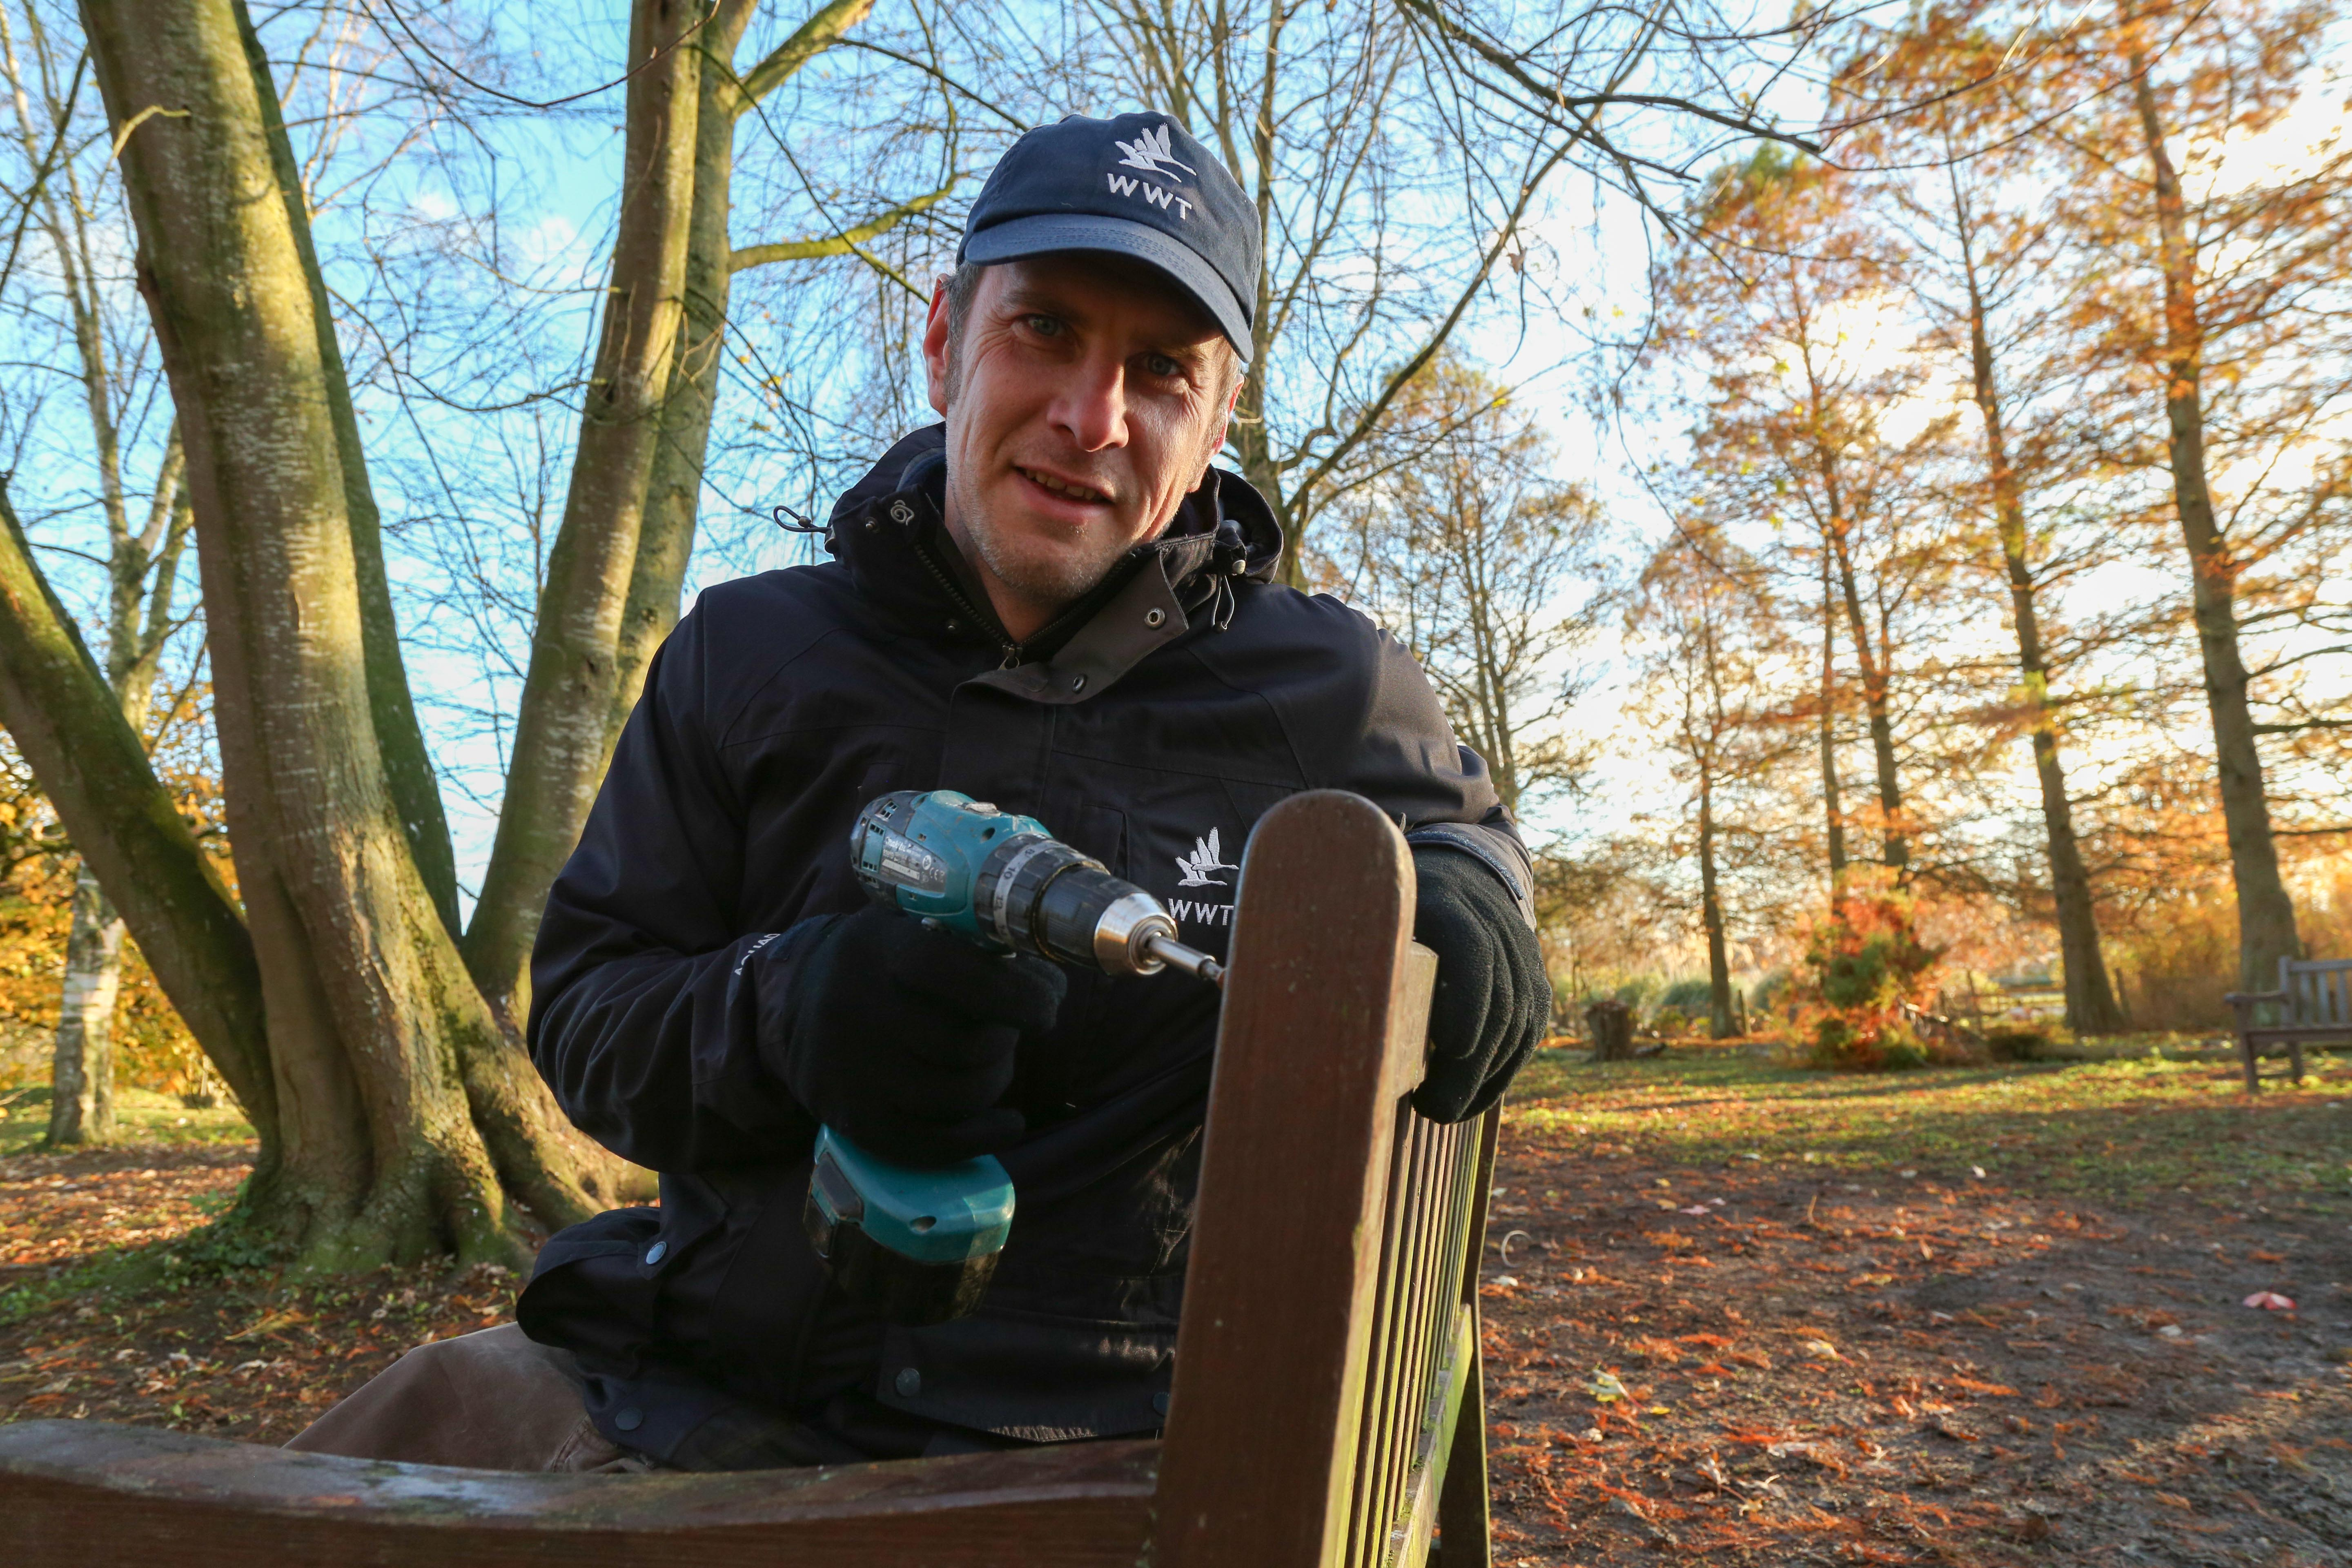 Grounds maintenance - Carpentry